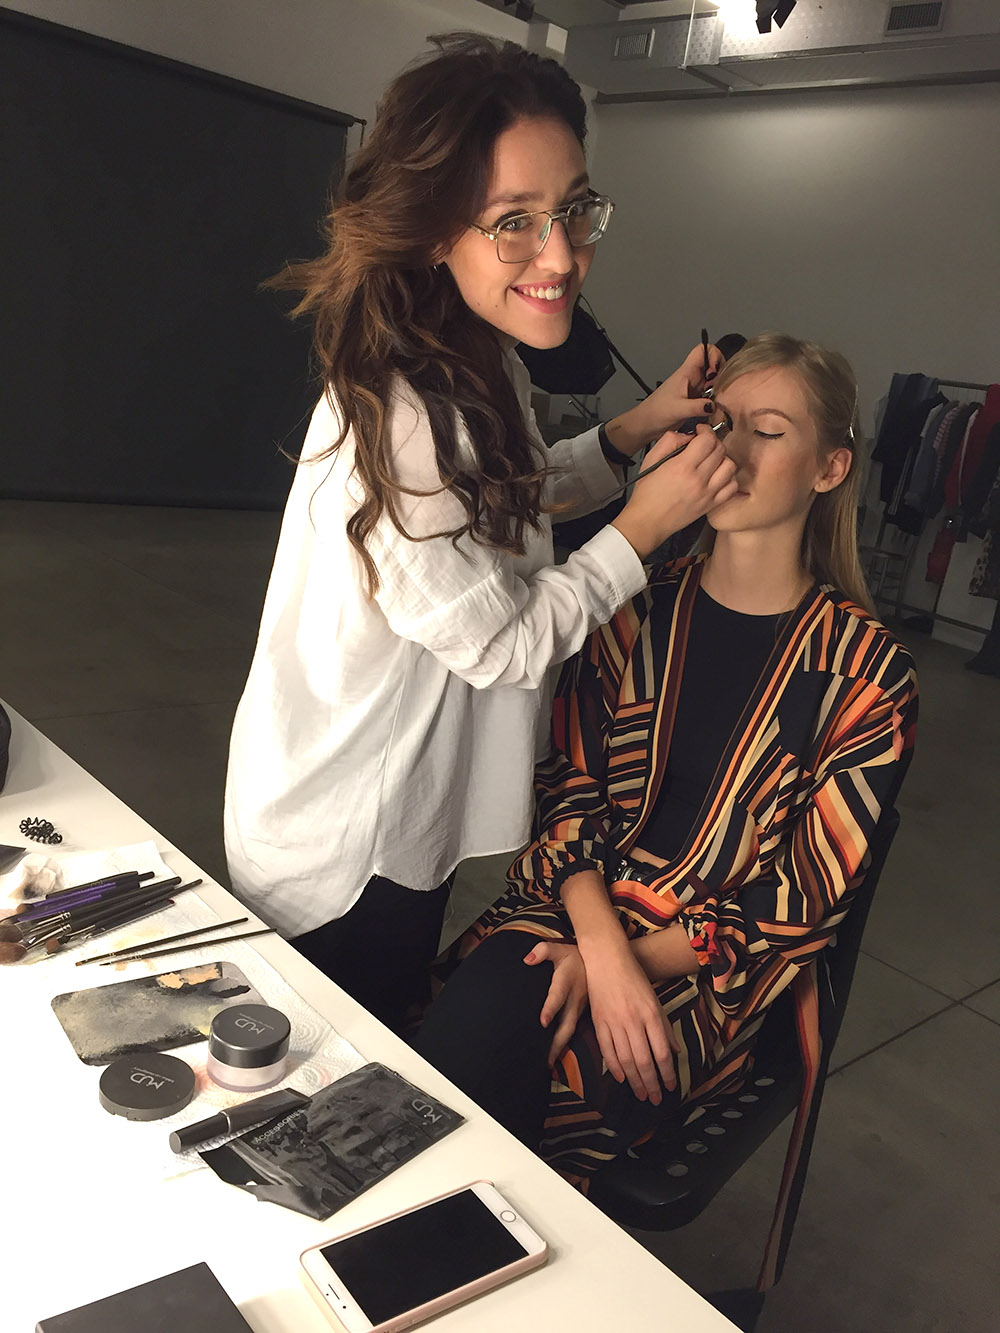 Backstage a trucco makeup artist working photo7it editoriale